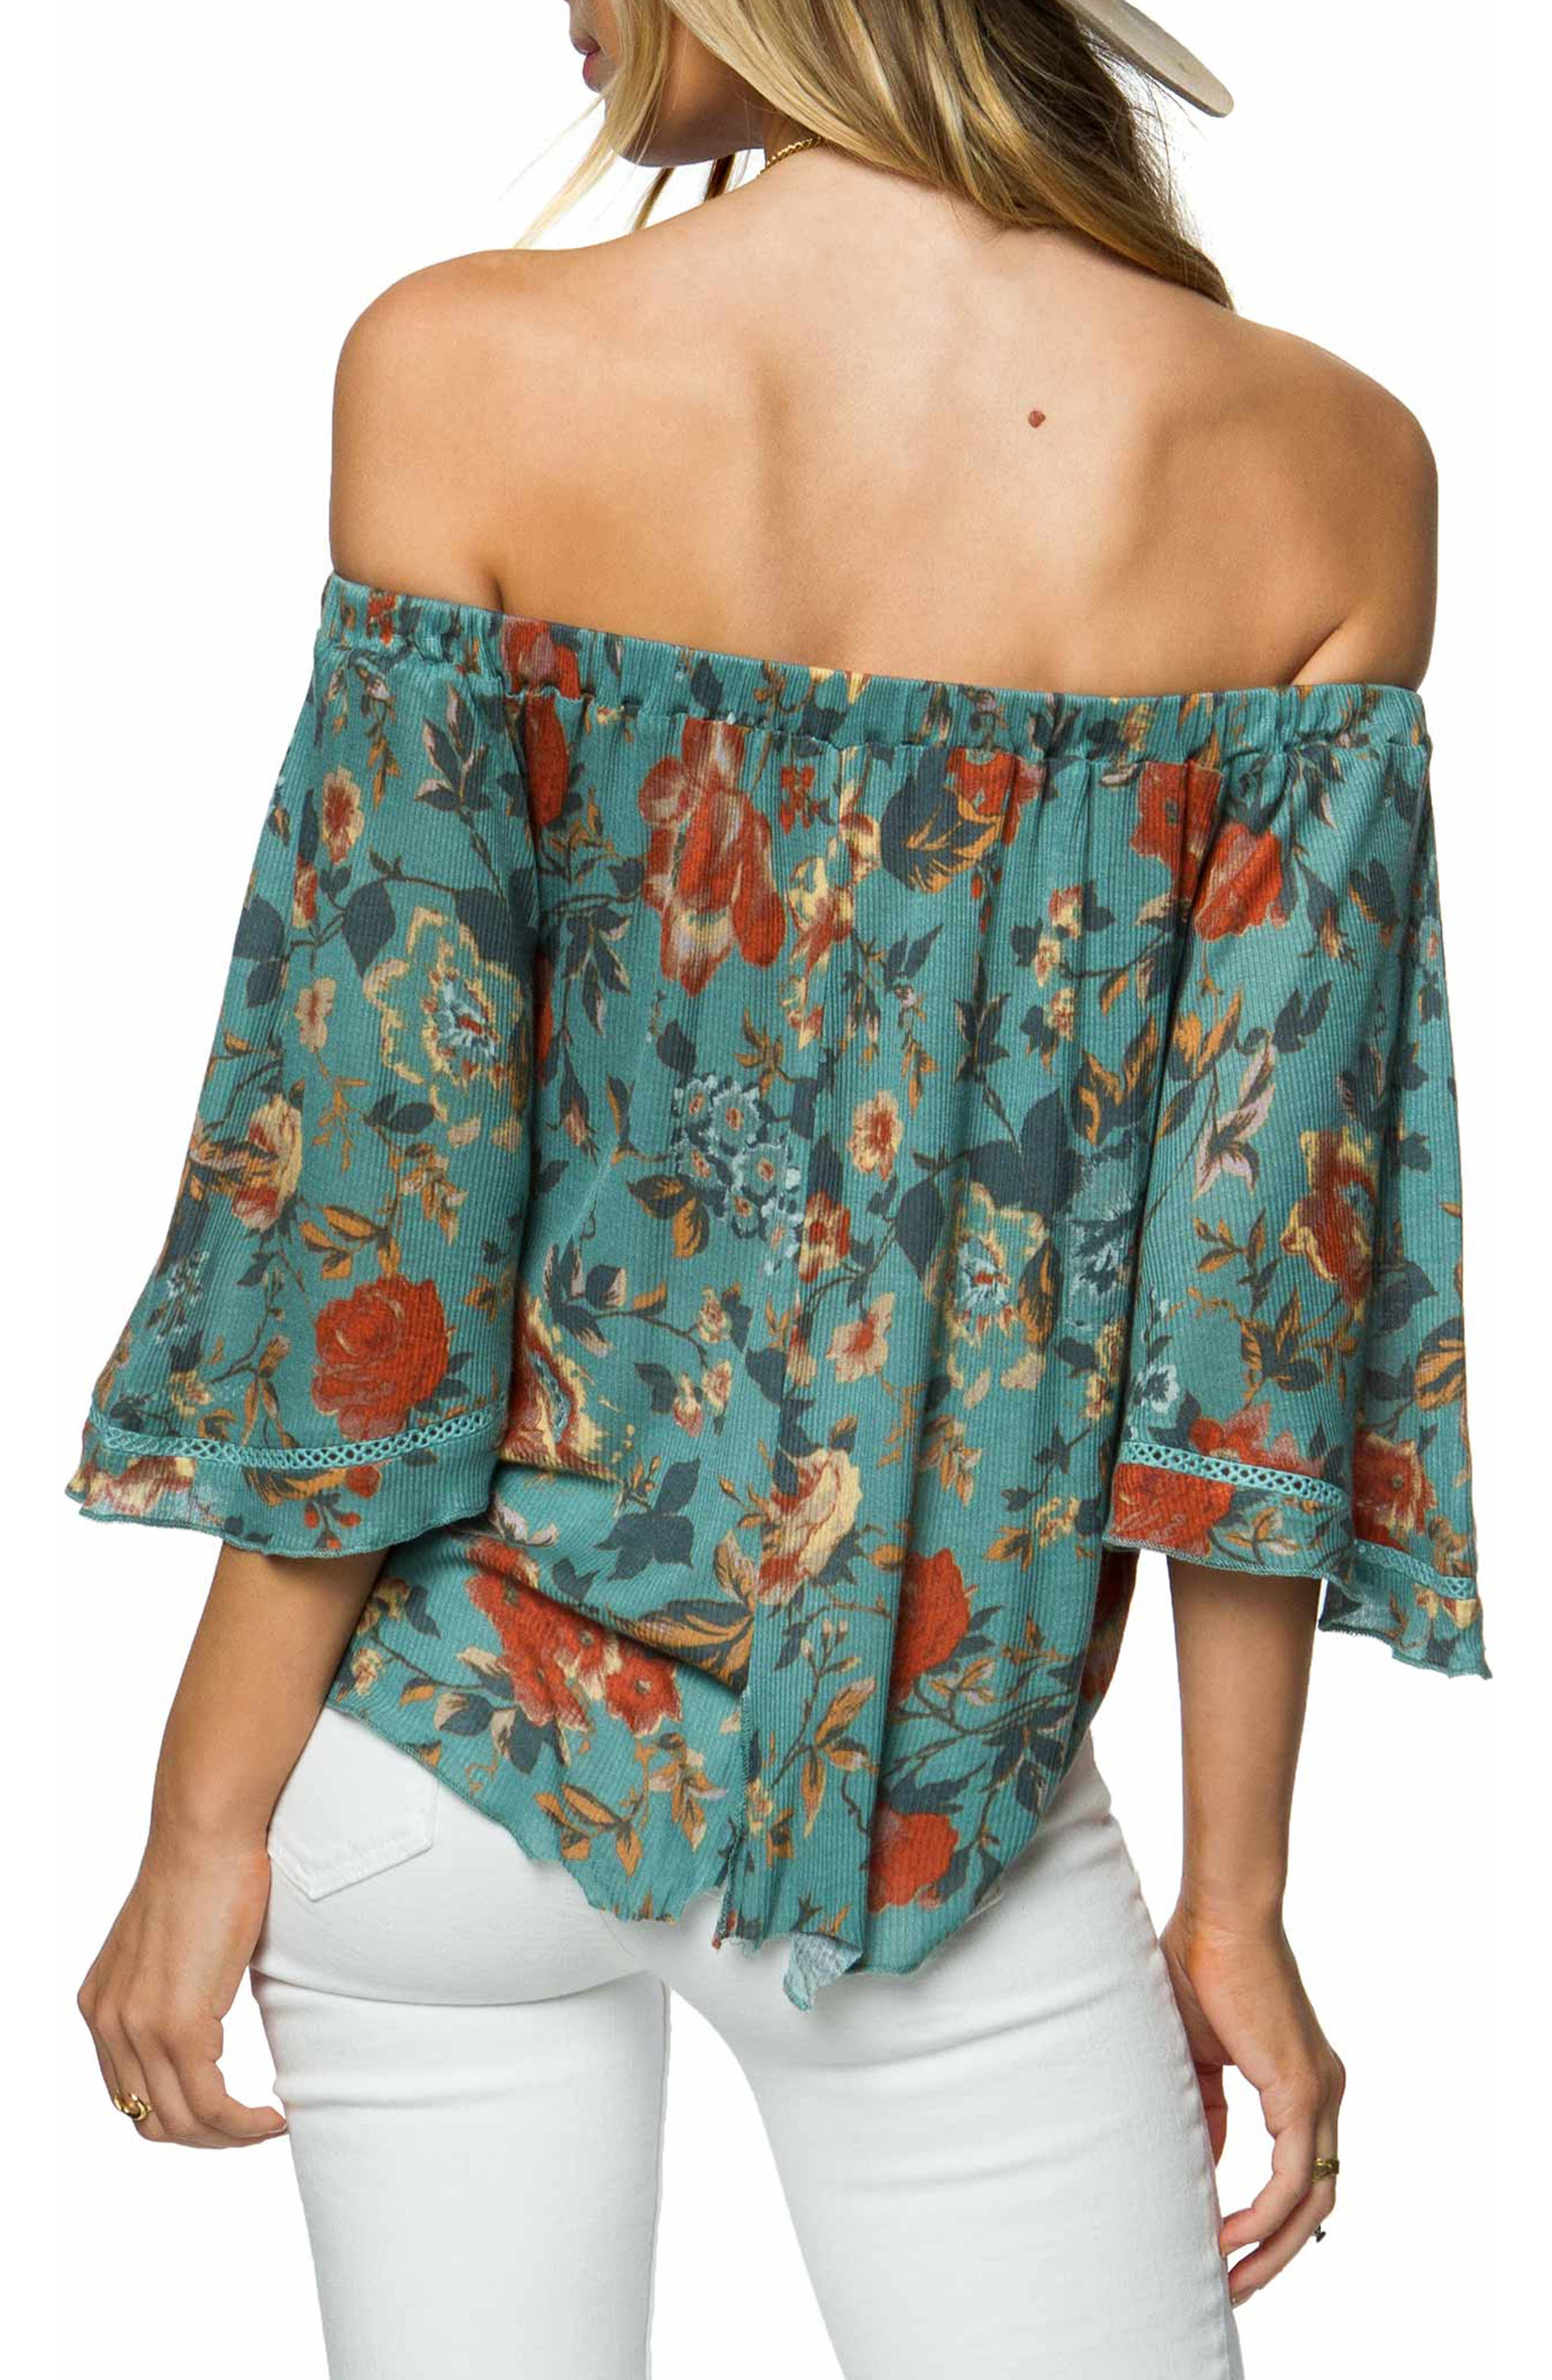 Rudy Off the Shoulder Top,                             Alternate thumbnail 2, color,